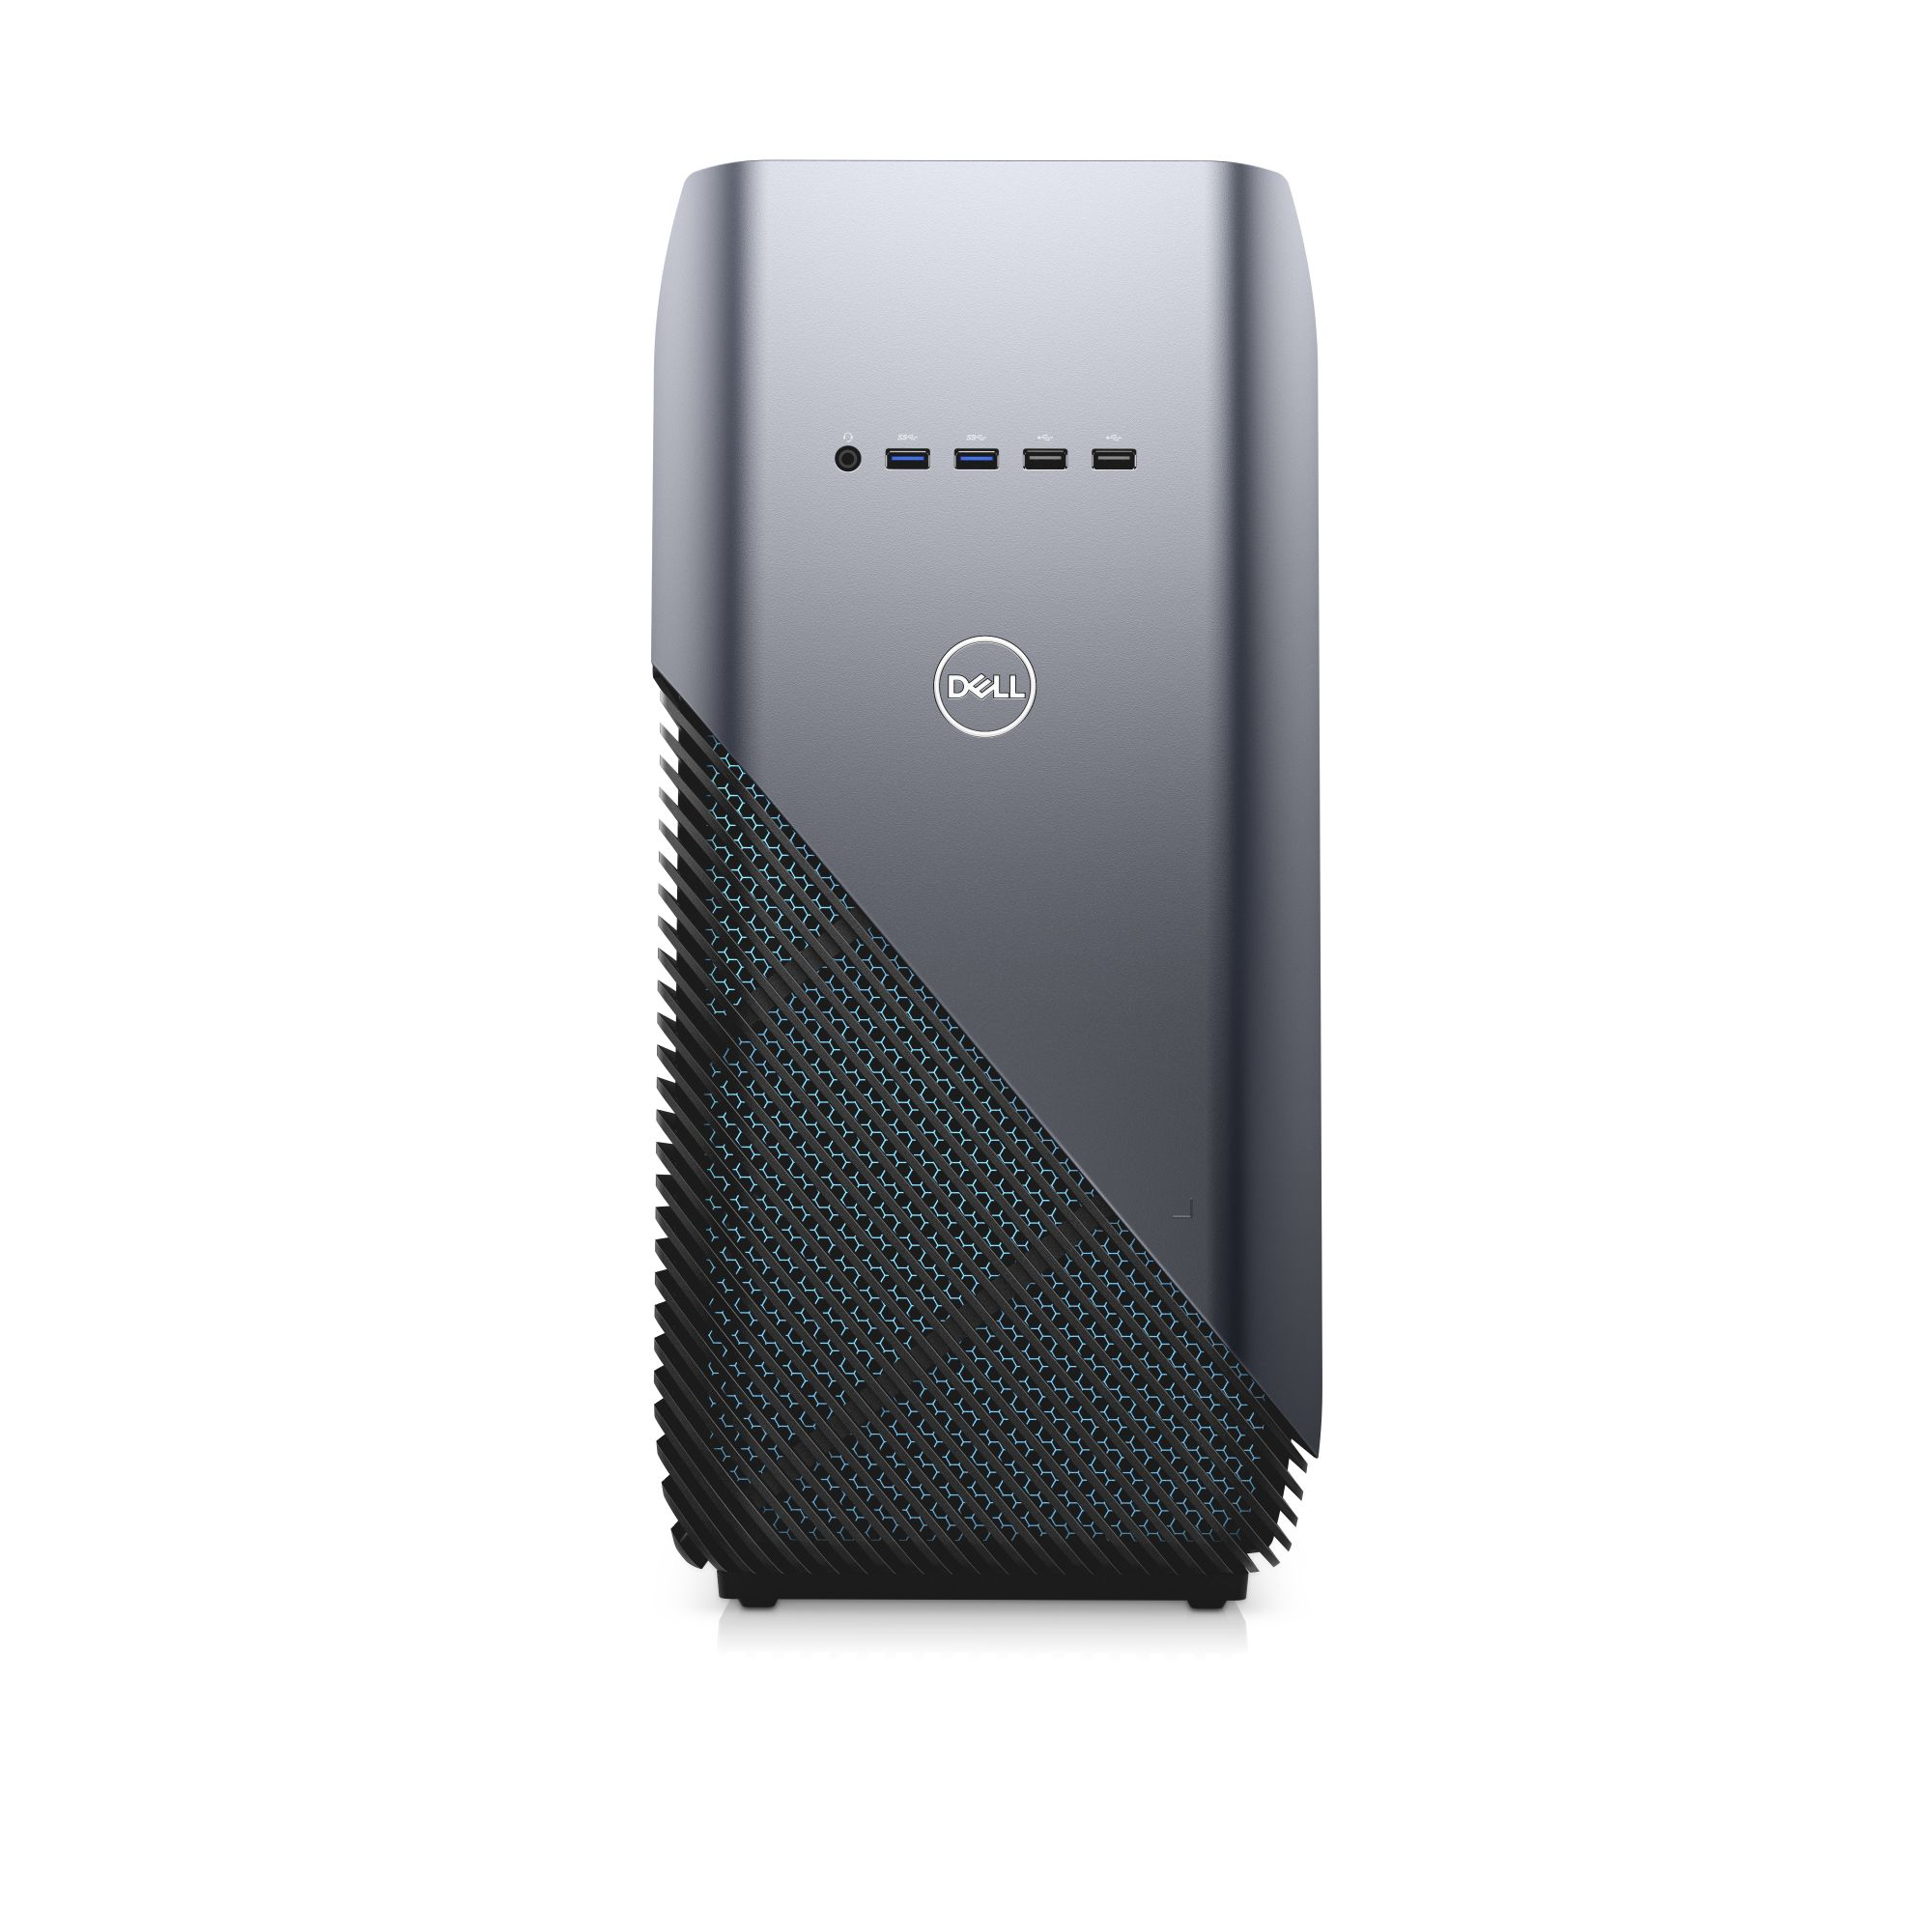 Dell PC Inspiron 5680 i5-8400/8GB/128S+1TB/GTX1060-6GB/HDMI/DP/DVI/USB-C/WiFi+BT/DVD-RW/W10/2RNBD